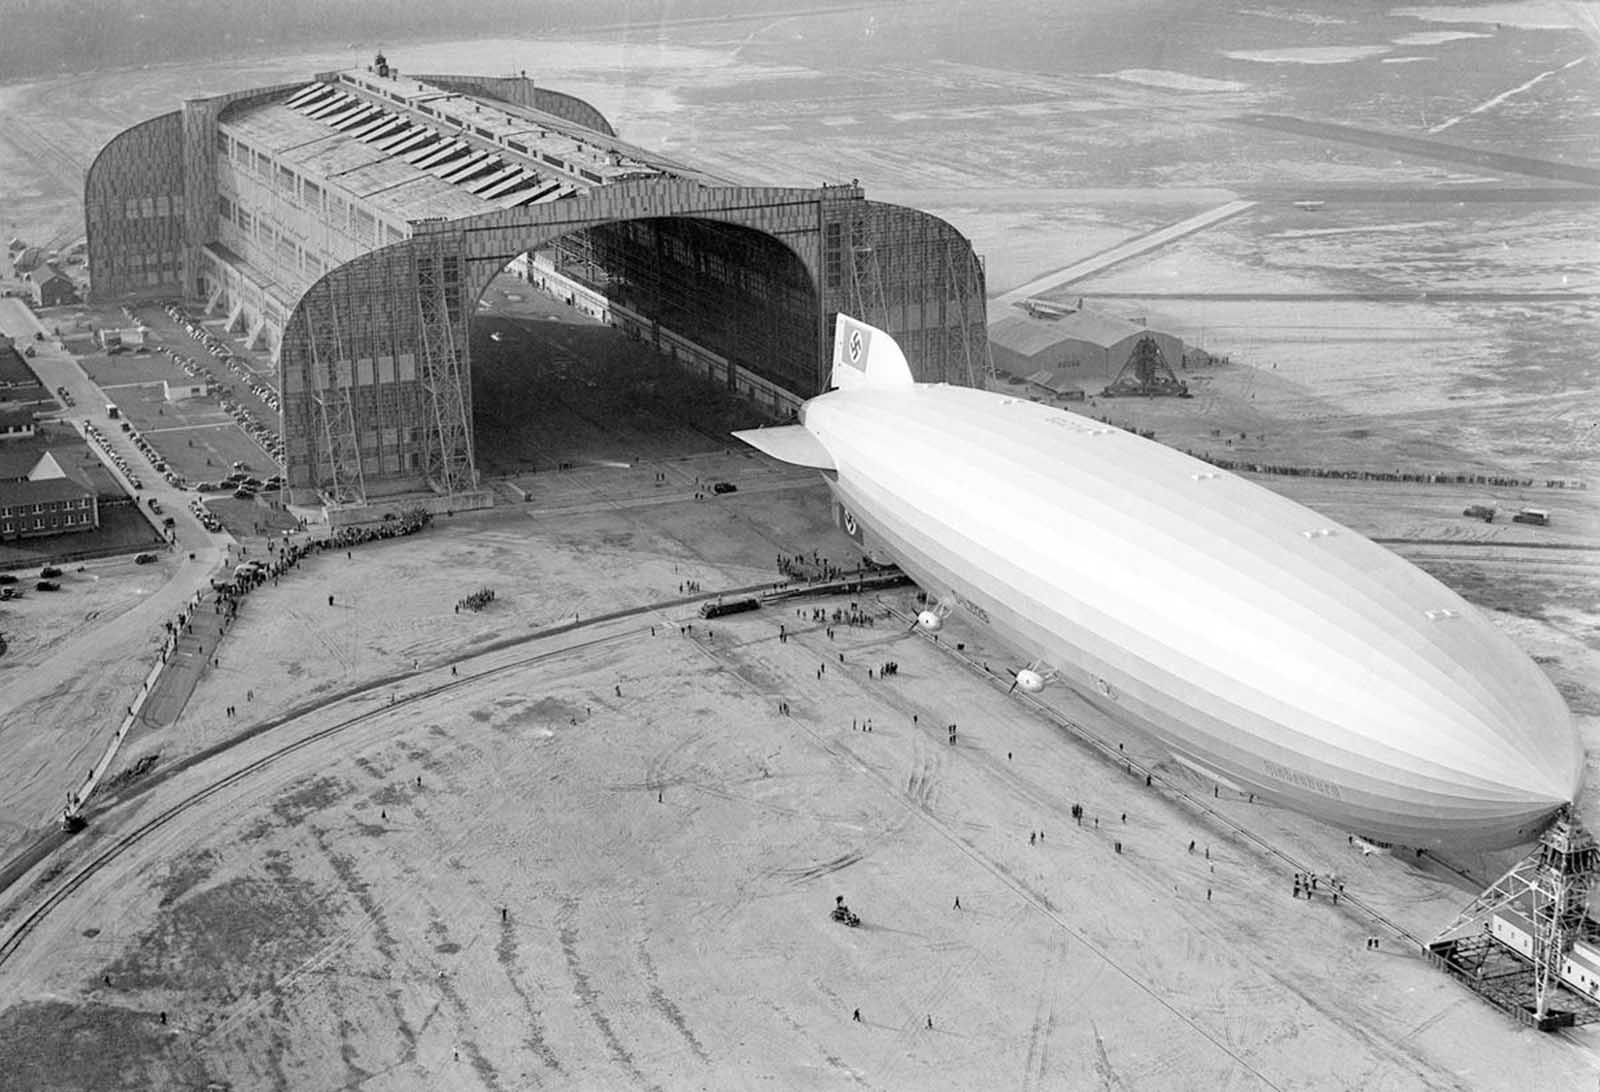 The German-built zeppelin Hindenburg trundles into the U.S. Navy hangar, its nose hooked to the mobile mooring tower, at Lakehurst, New Jersey, on May 9, 1936. The rigid airship had just set a record for its first north Atlantic crossing, the first leg of ten scheduled round trips between Germany and America.